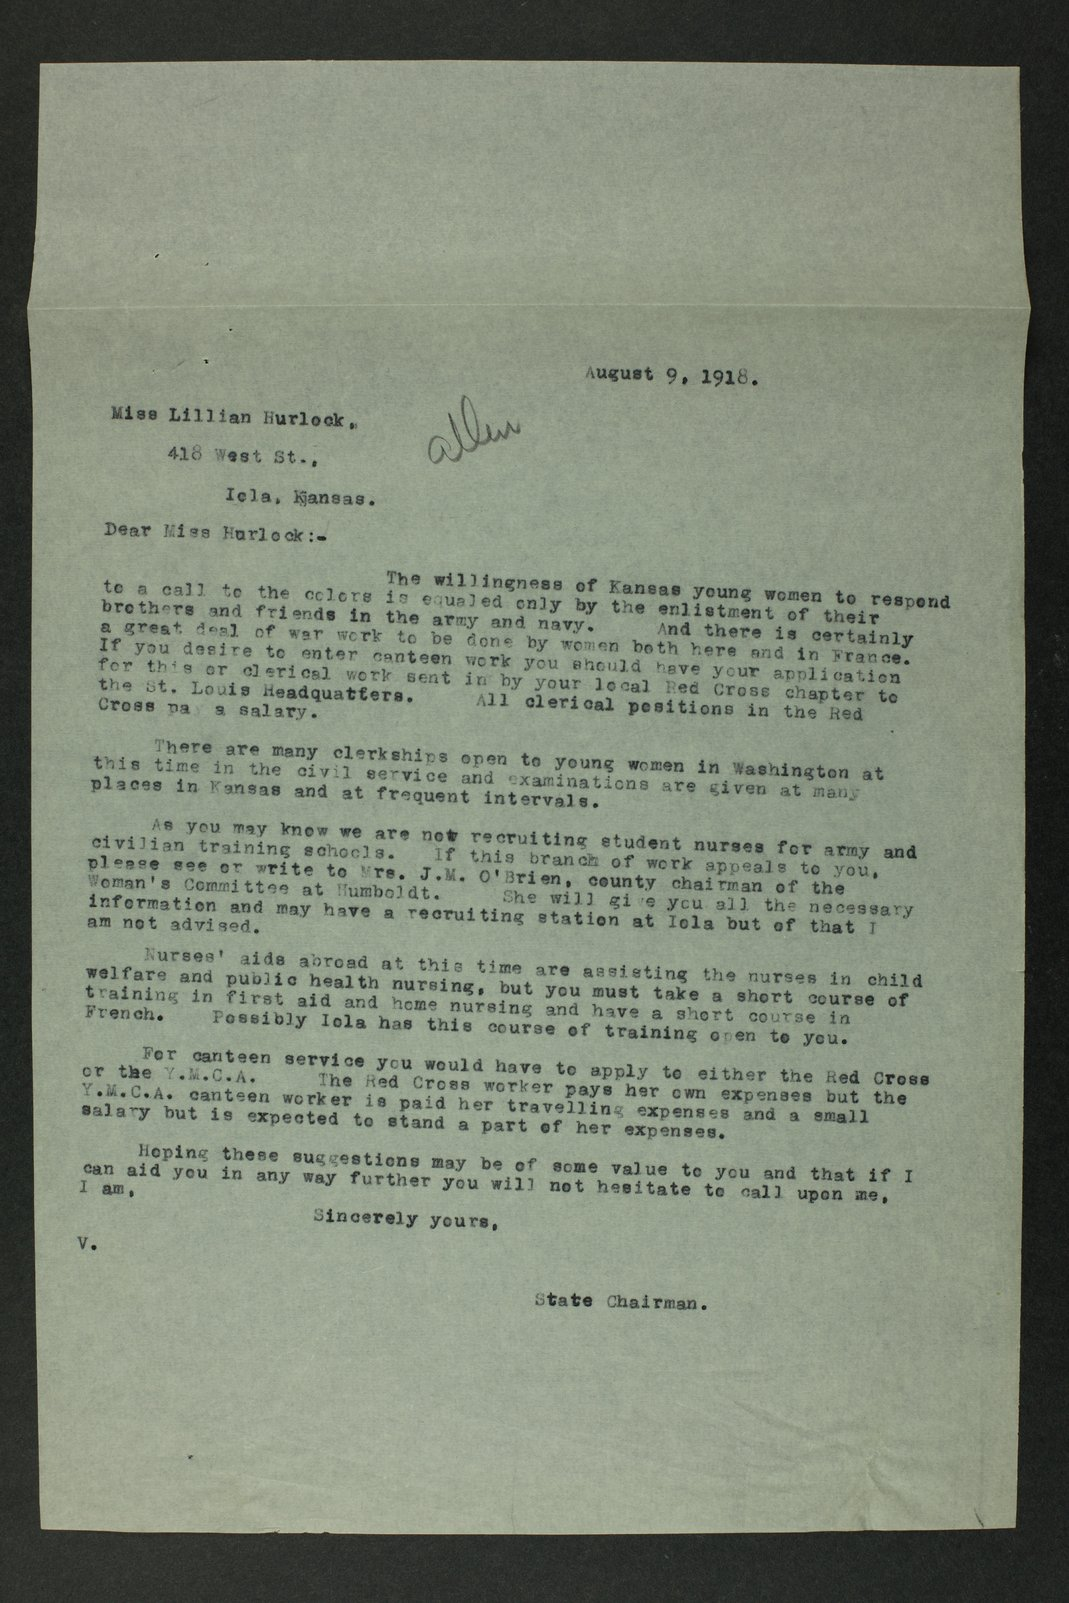 Council of National Defense Woman's Committee correspondence - 5